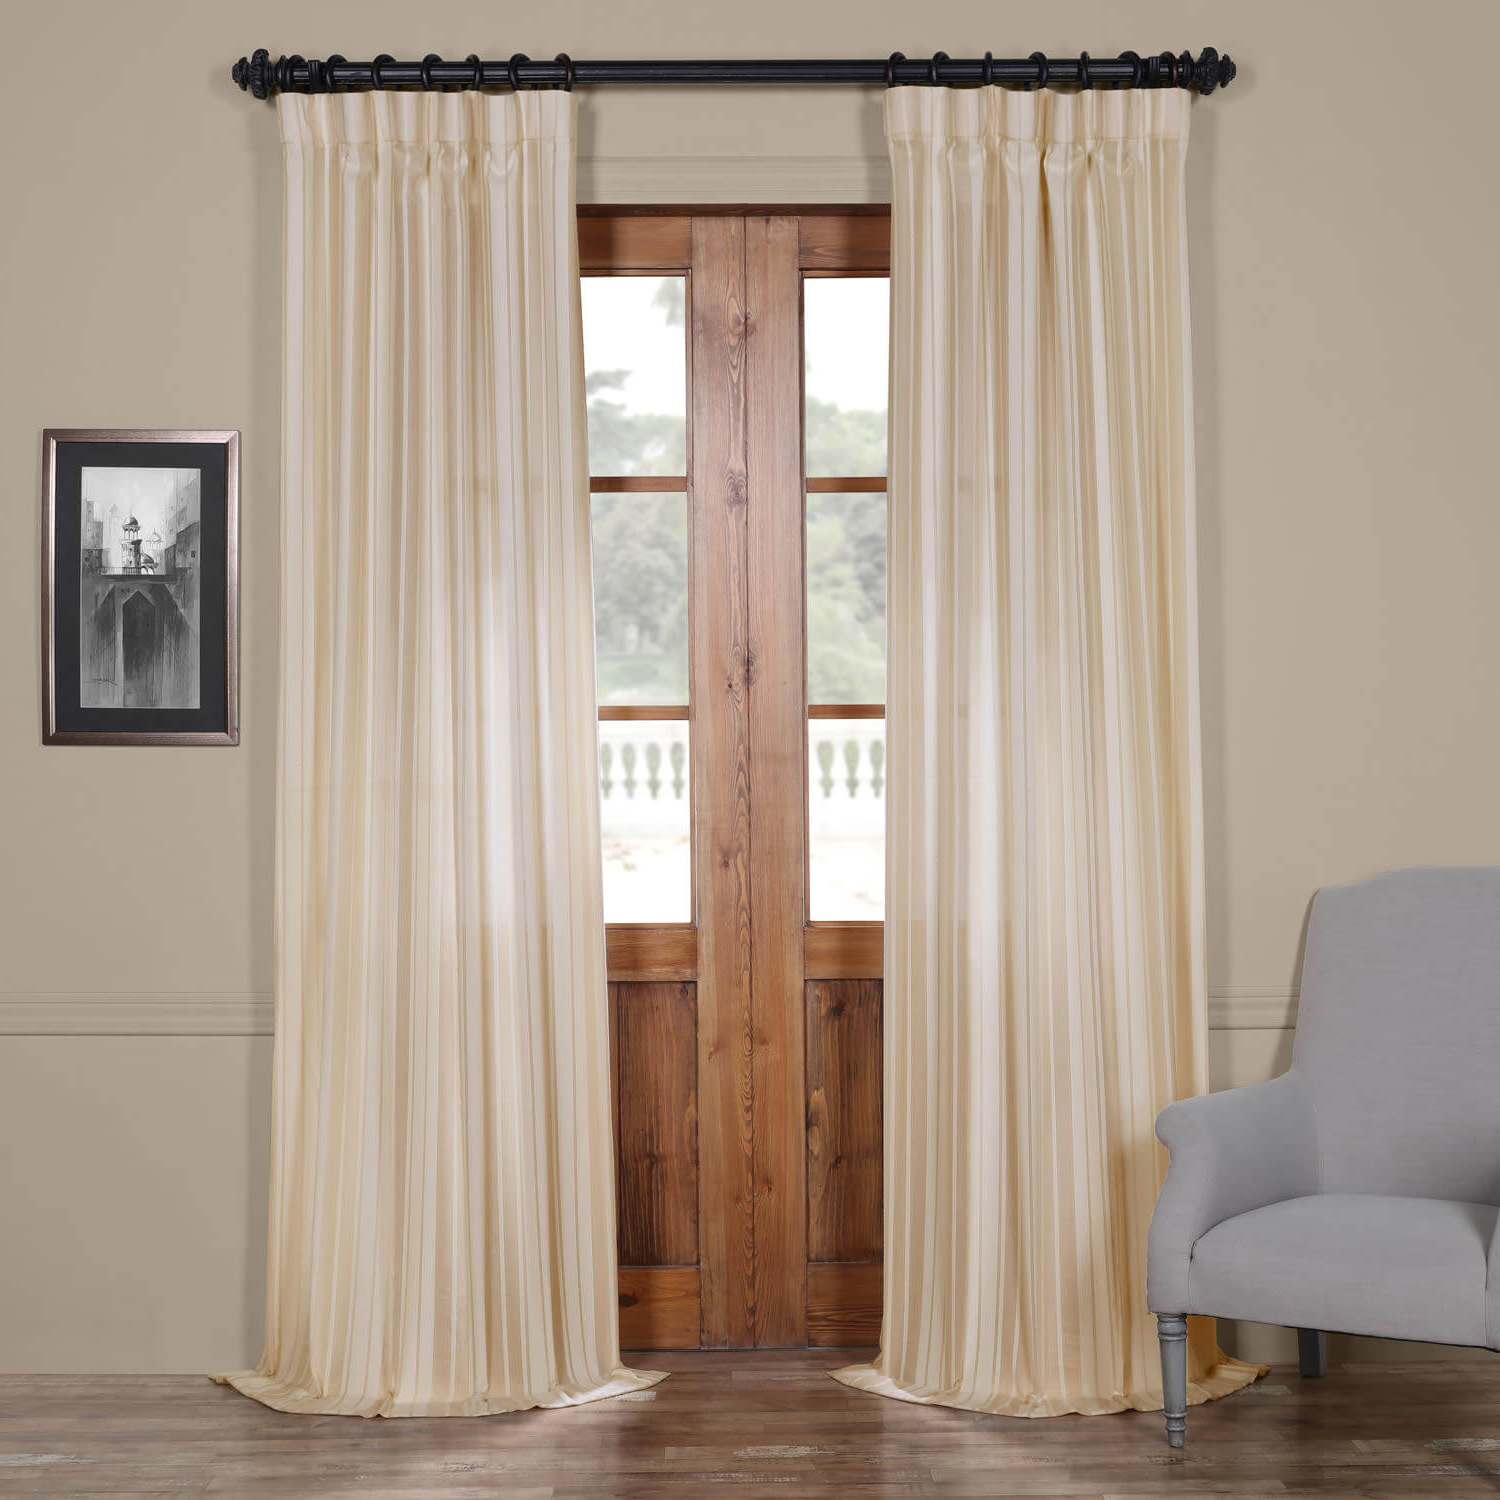 Cayman Natural Striped Linen Sheer Curtain Intended For Popular White Micro Striped Semi Sheer Window Curtain Pieces (View 18 of 20)